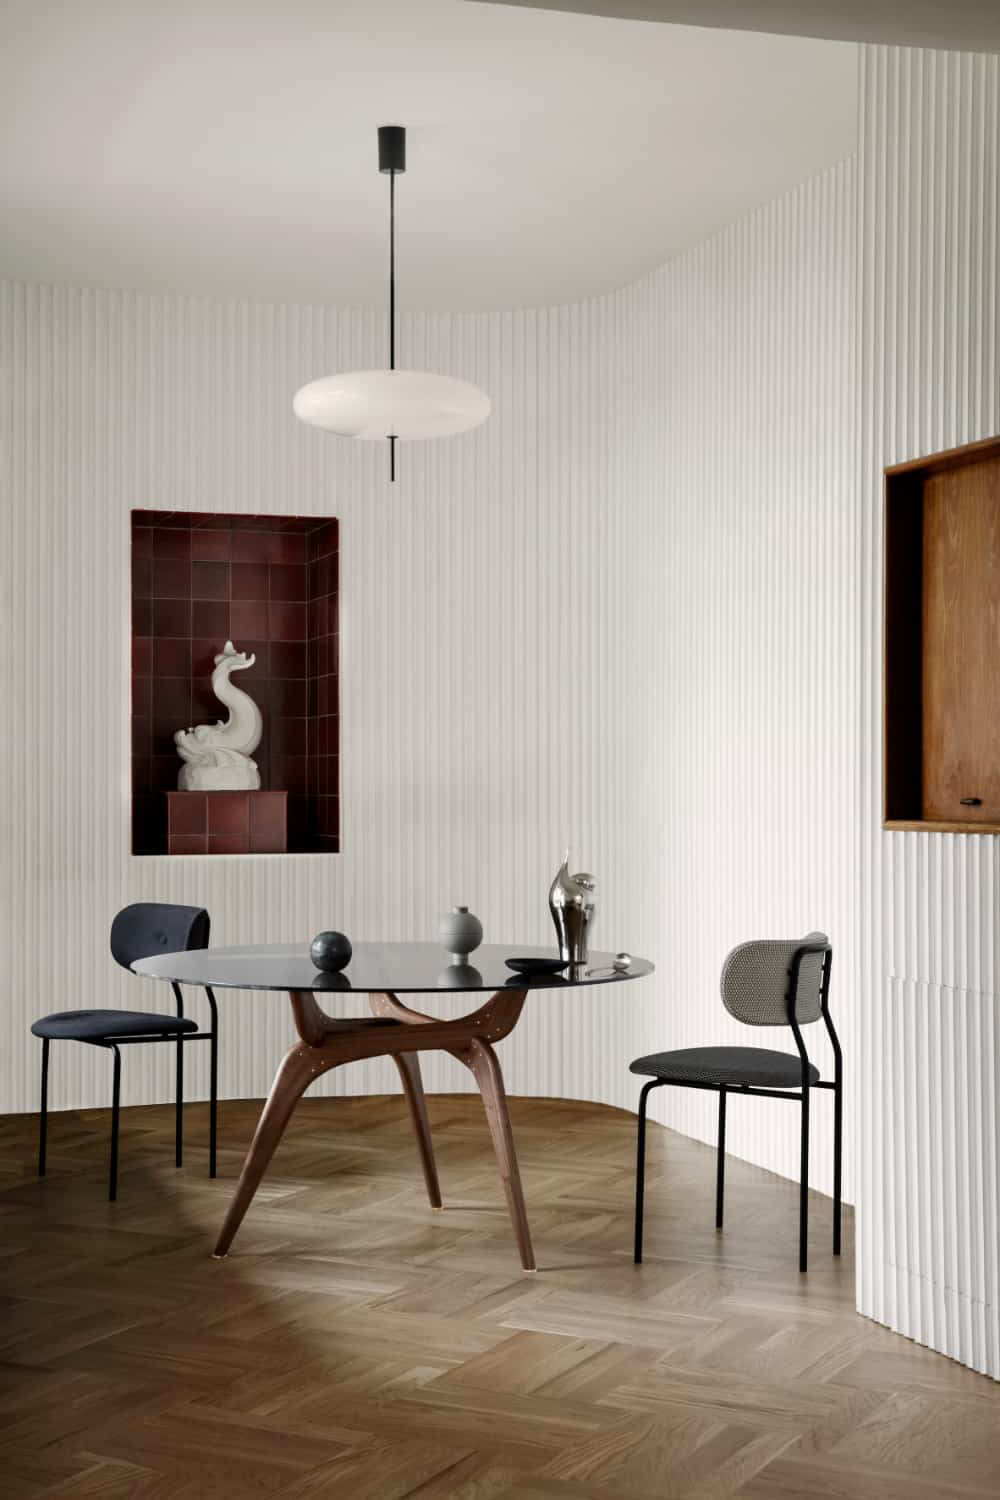 Mid-century modern tables designed by architect Hans Bølling in 1958 were never produced